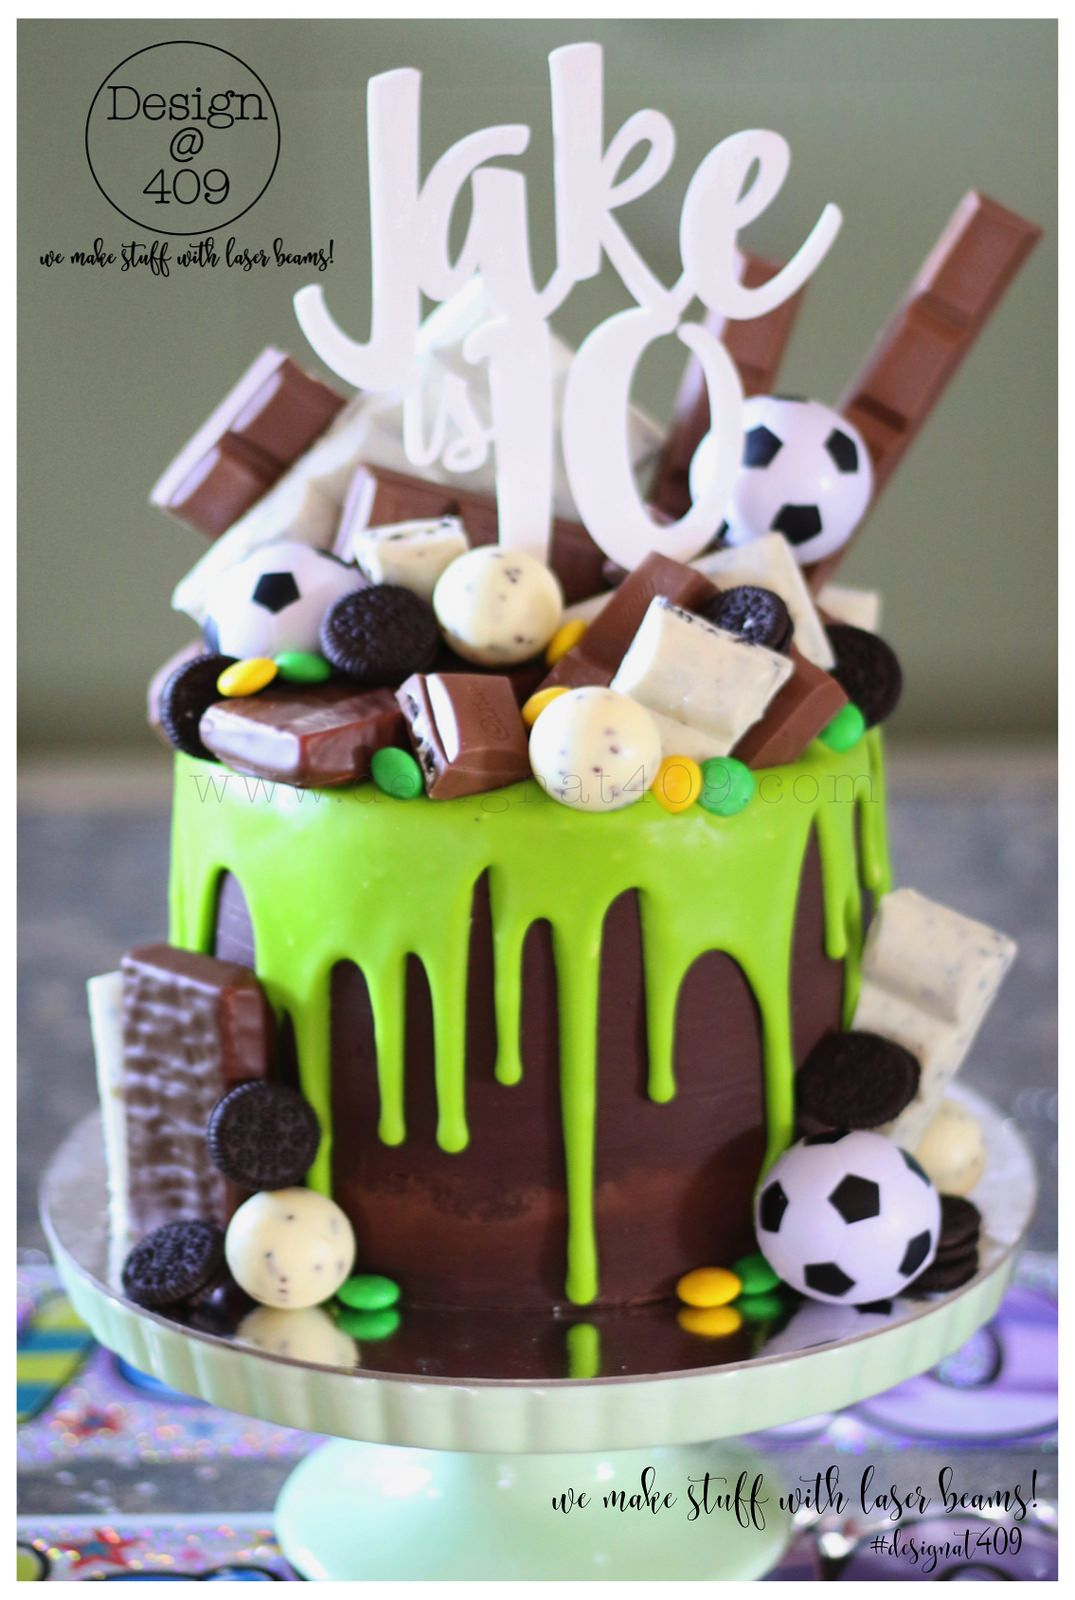 Chocolate Green Drip Soccer Themed Cake With White Acrylic Jake Is 10 Cake Topper Design 409 Drip Cakes Soccer Birthday Cakes Chocolate Drip Cake